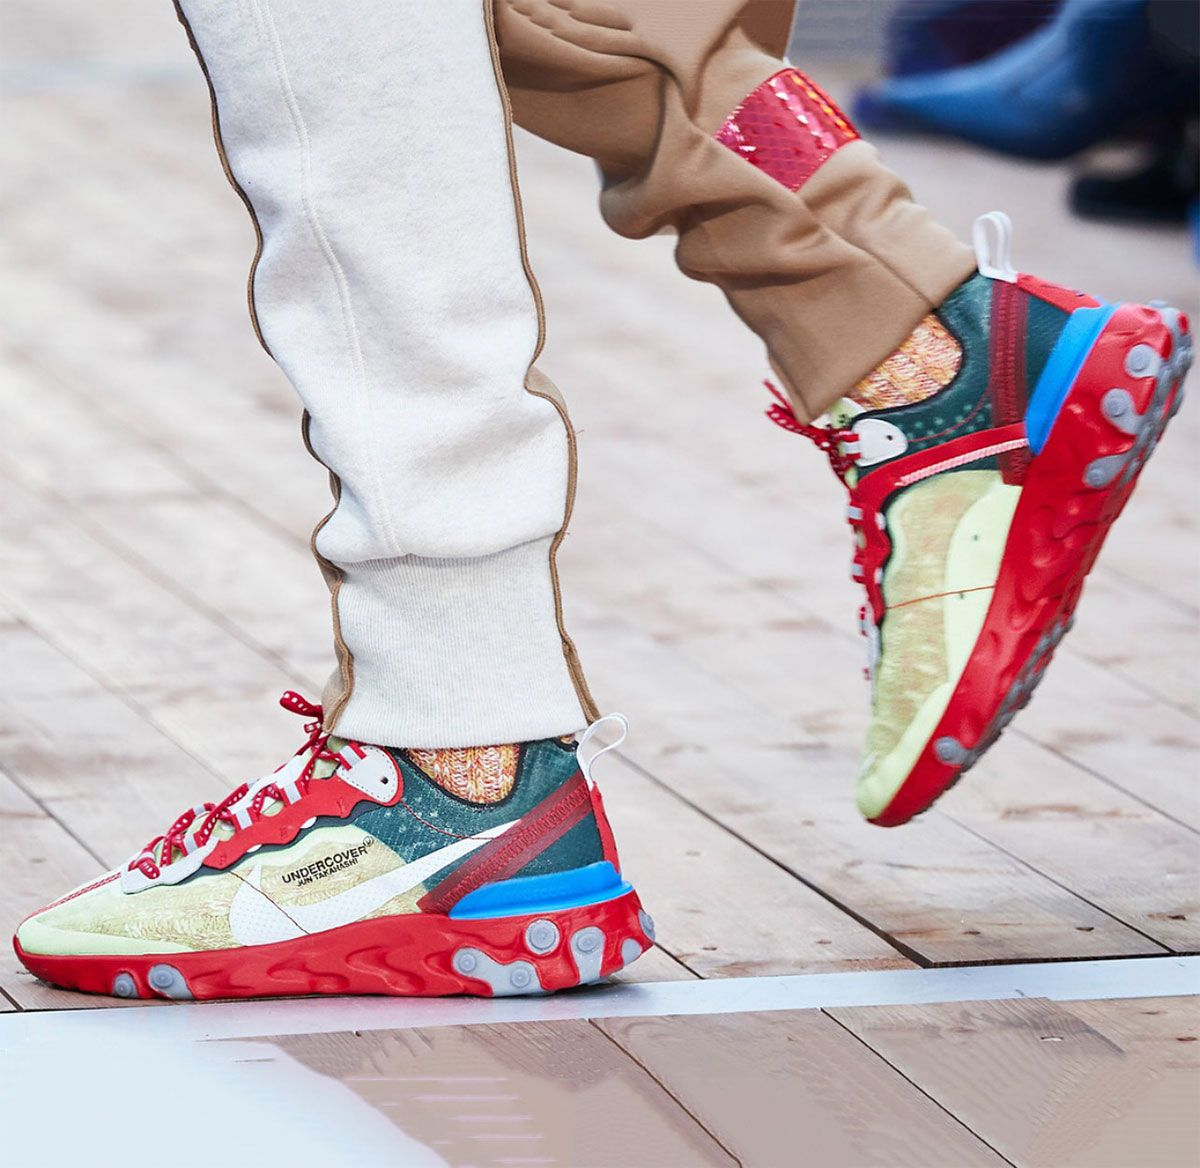 undercover nike react element 87  cbdad6360d